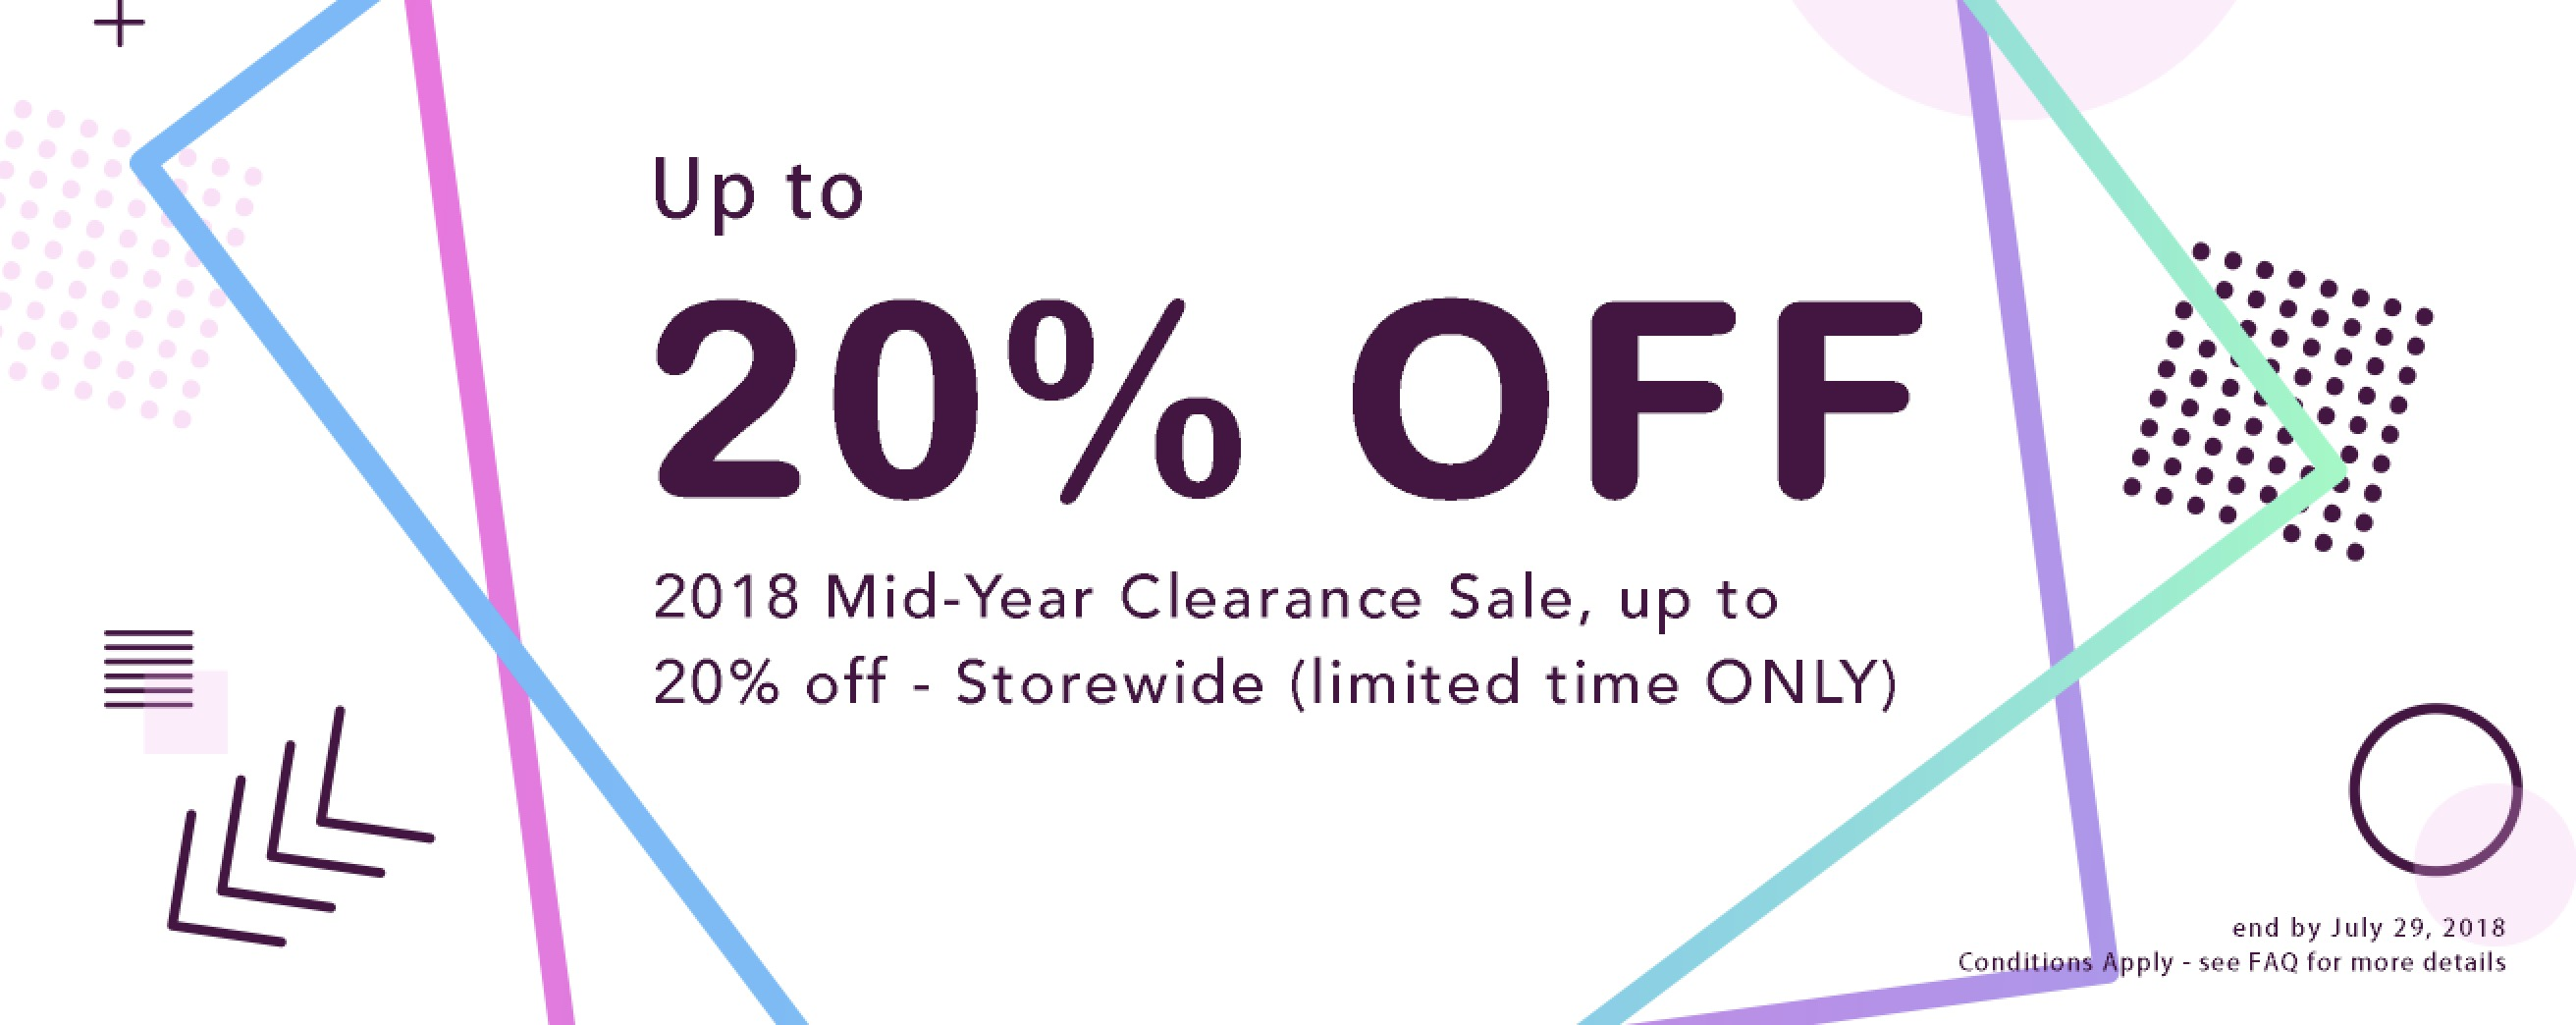 2018-07-mid-year-sale-20-off.jpeg